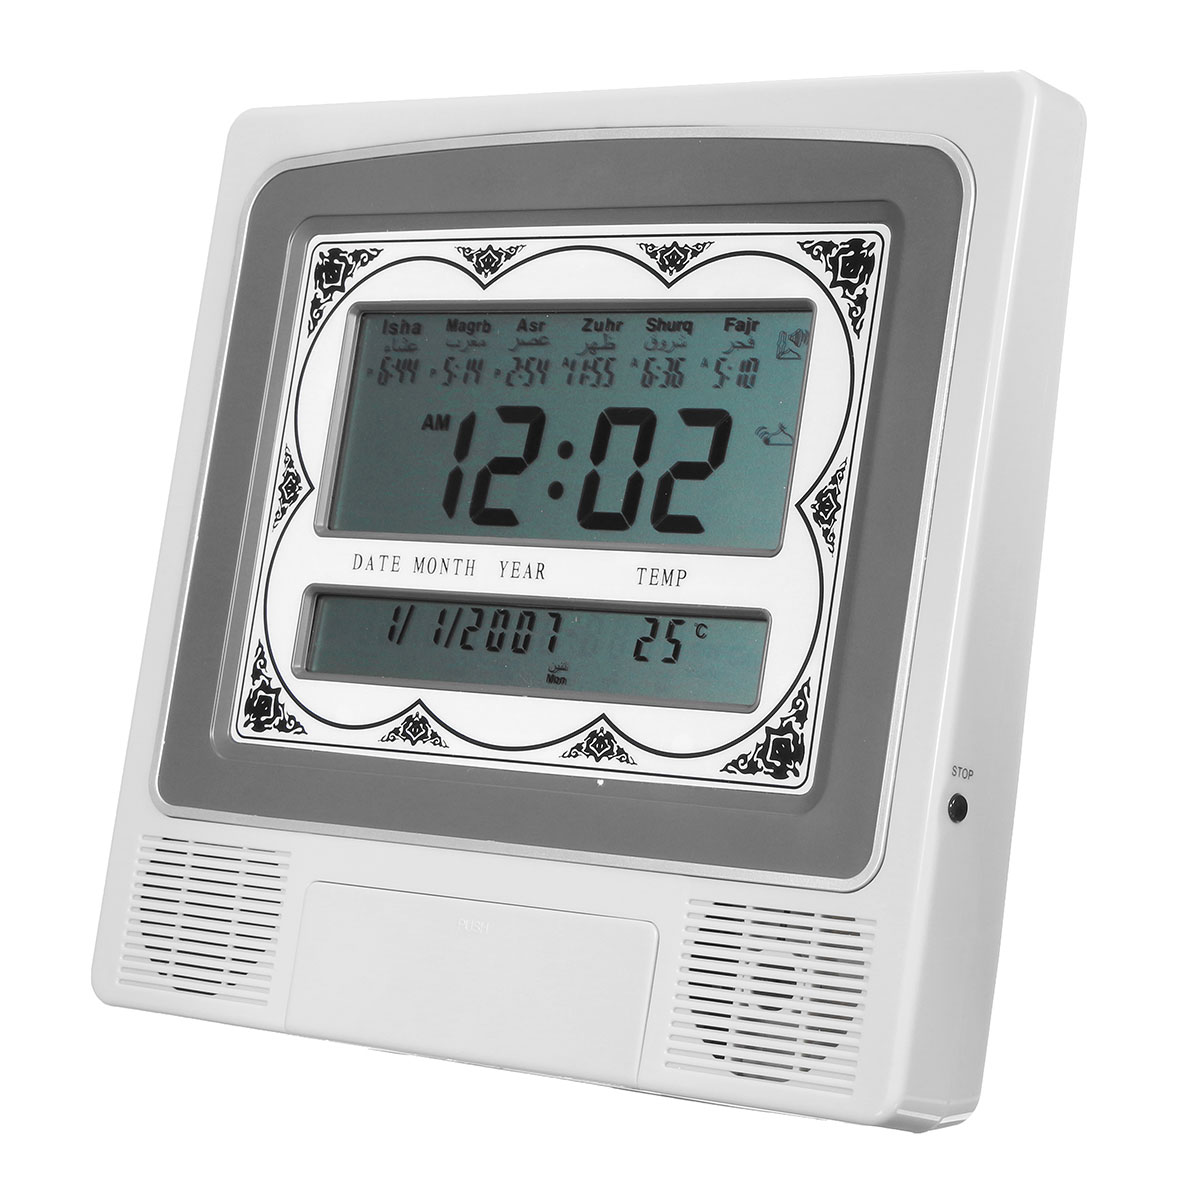 2 Ways LCD Automatic Digital Islamic Azan Muslim Prayer Alarm Wall Table Home Clock with Temperature Display